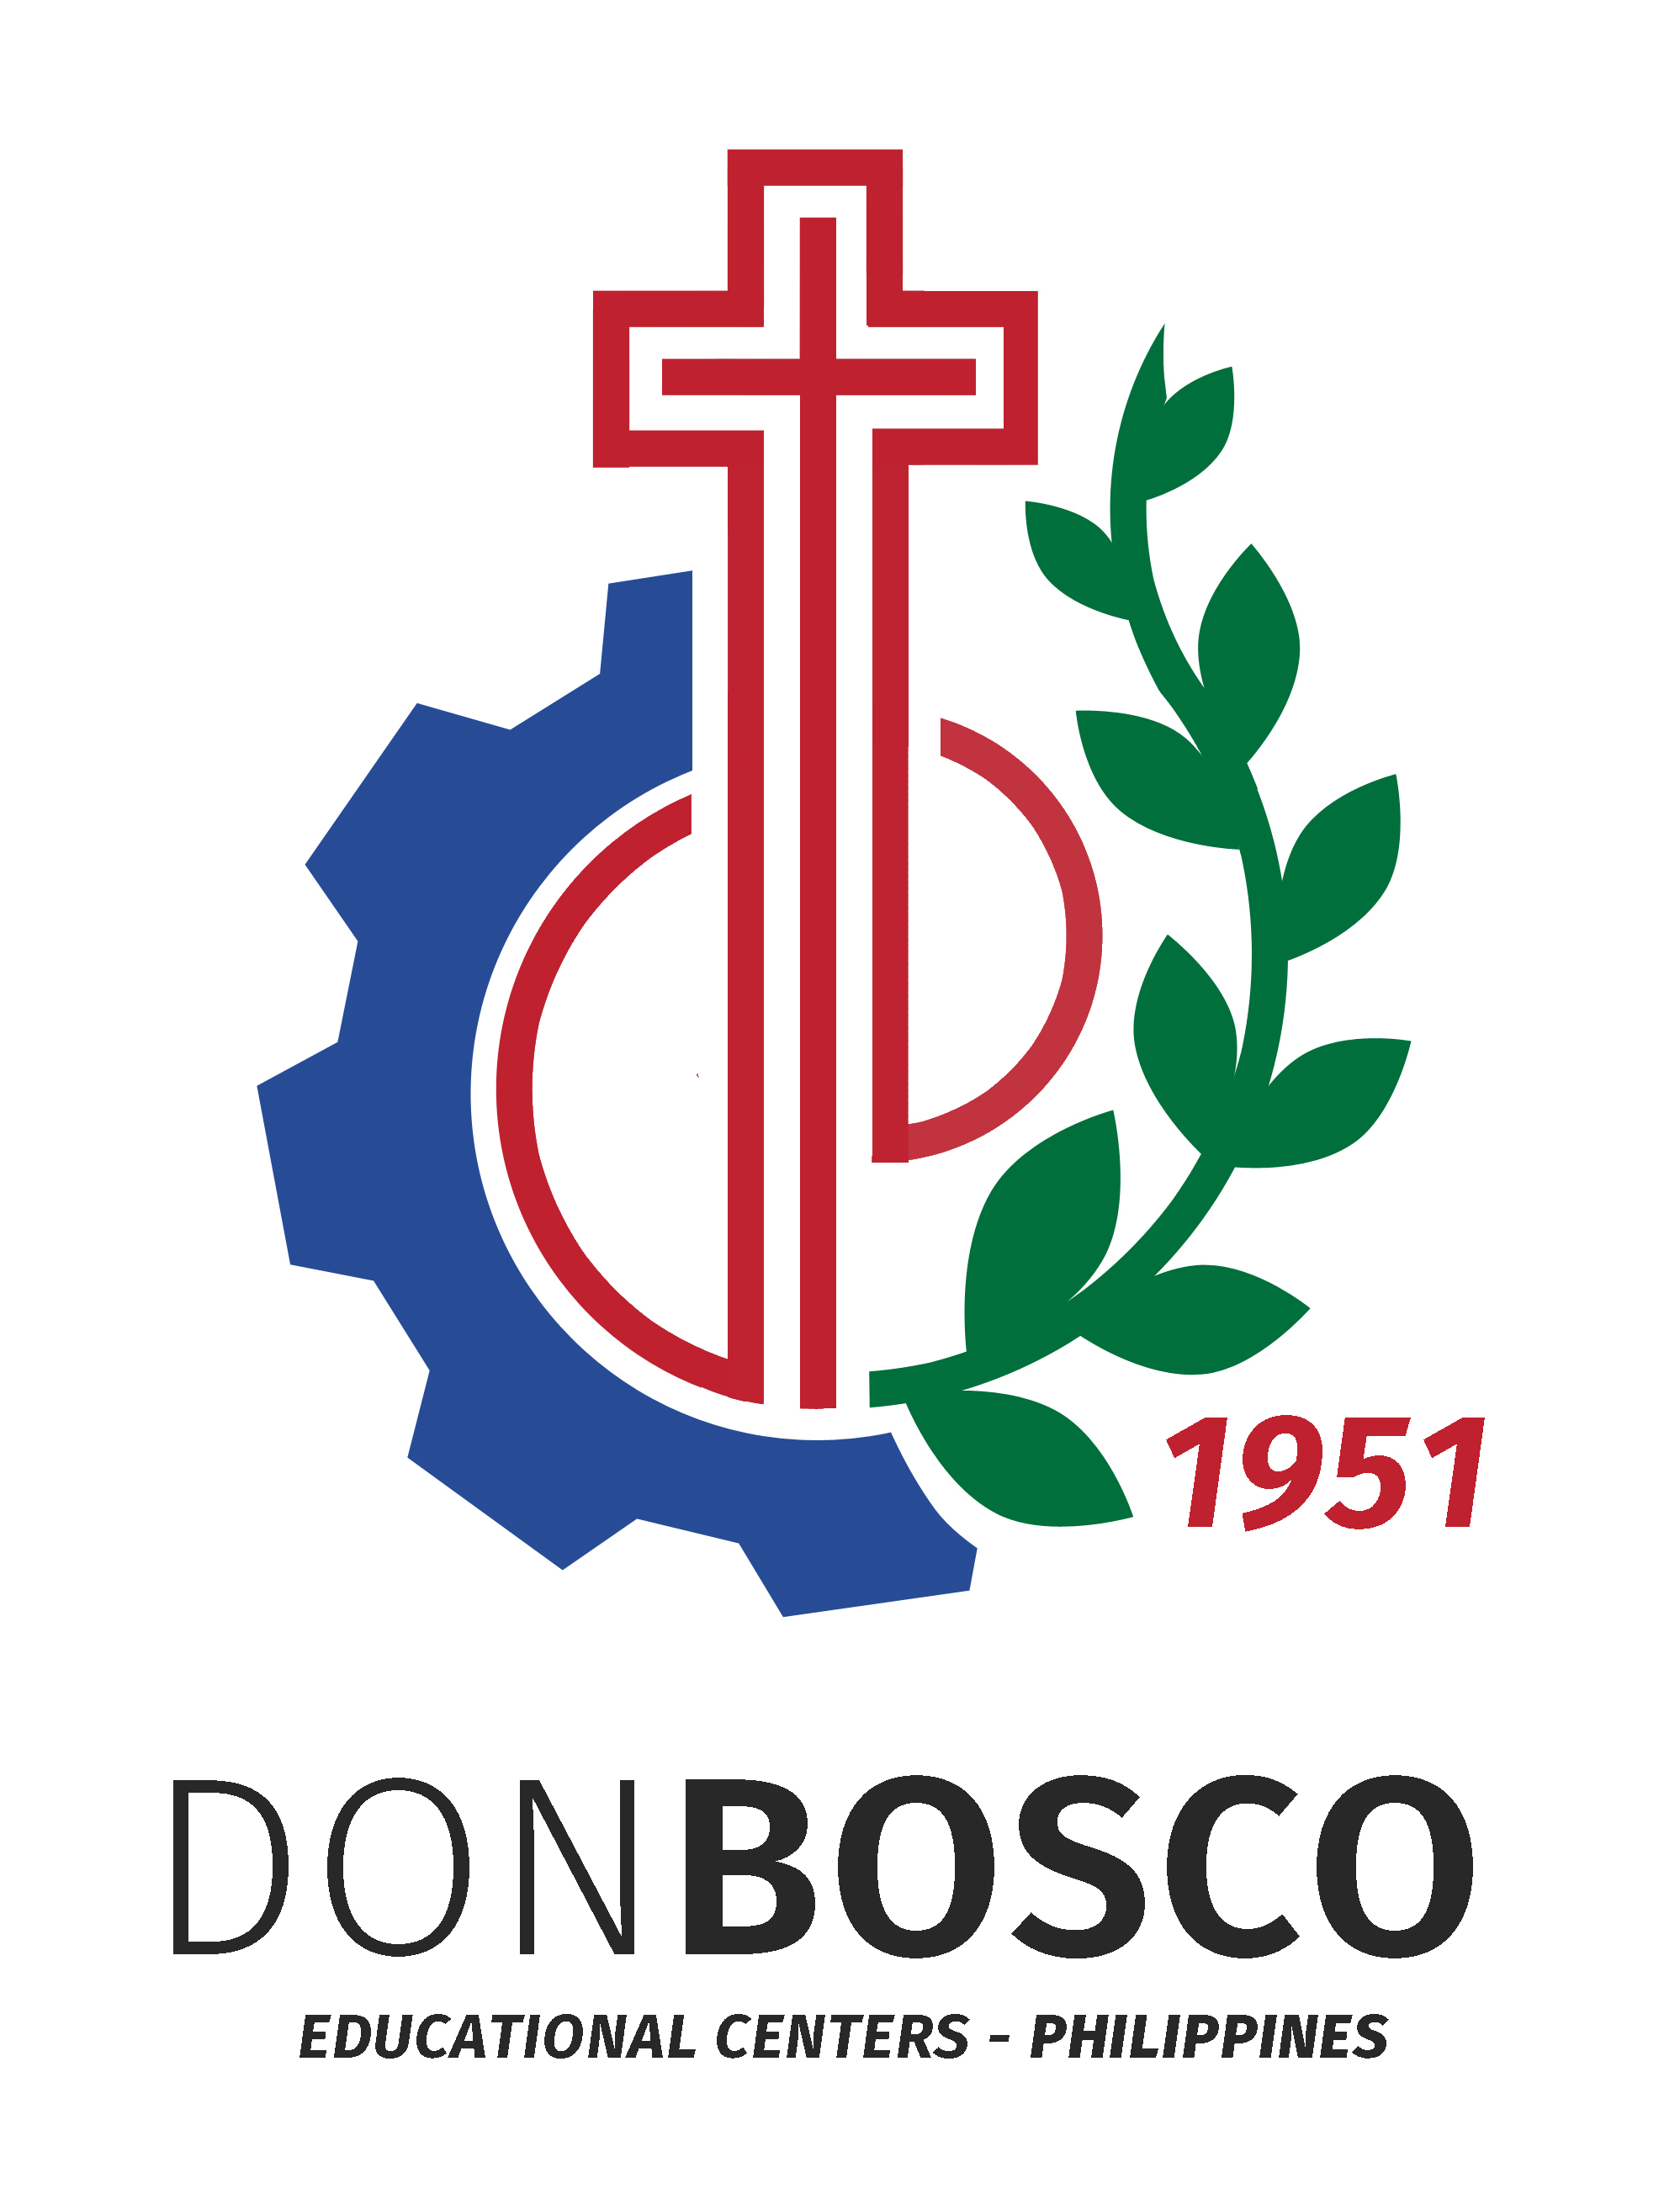 Don Bosco Educational Centers Philippines